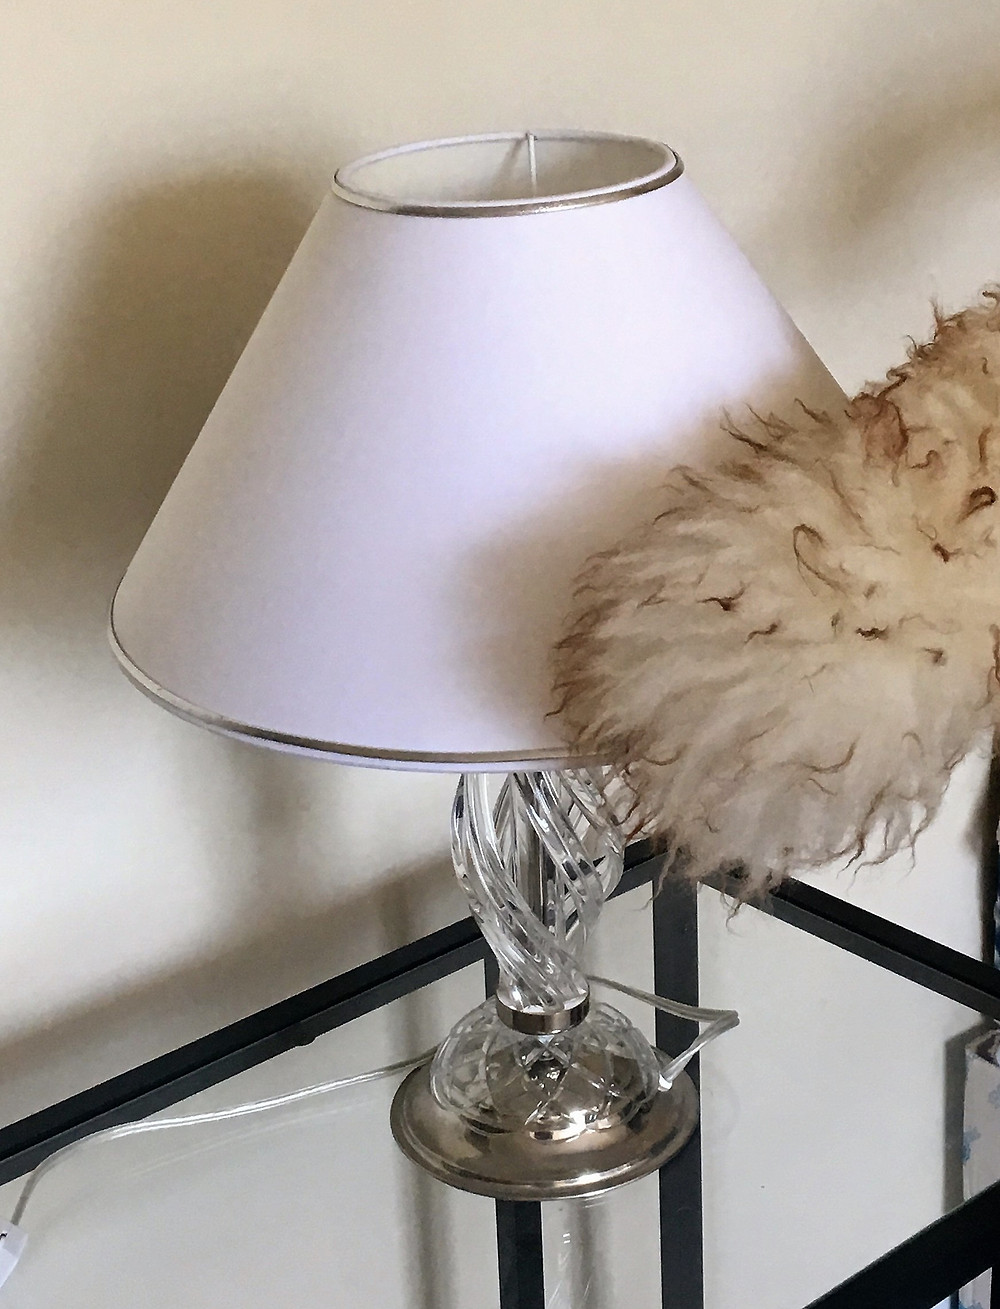 Dry cleaning of lampshade